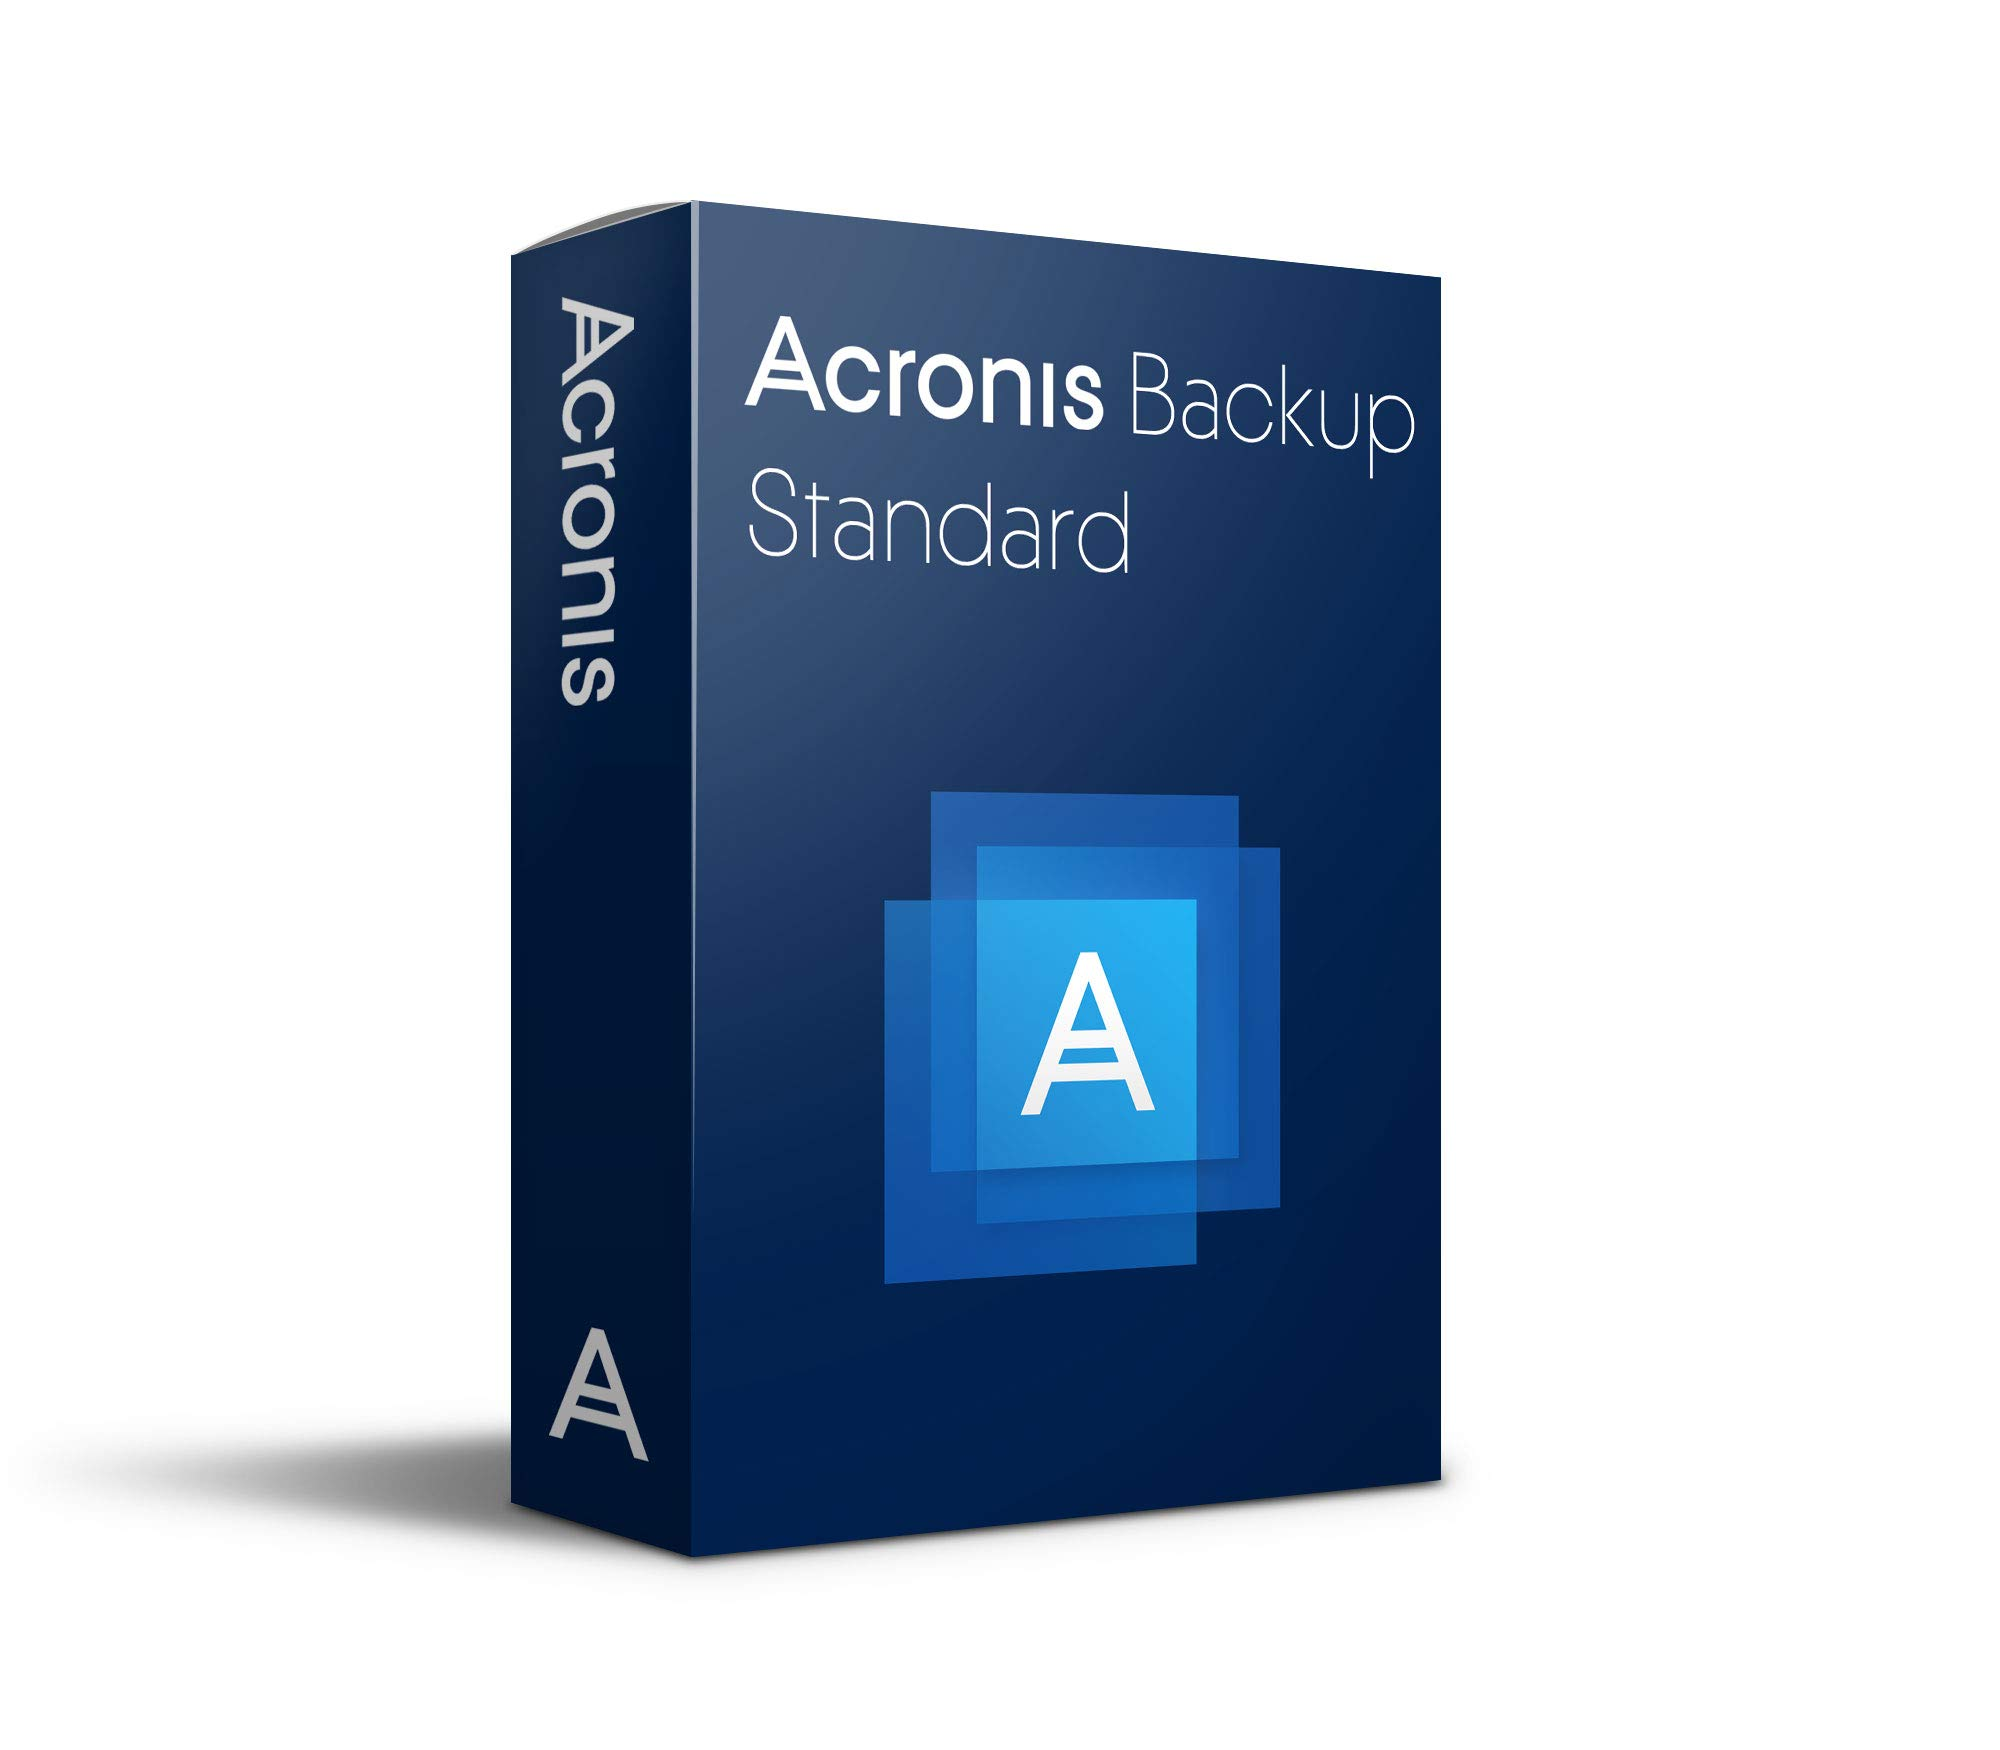 Acronis | B1WBEBLOS11 | Backup Standard Server Subscription License, 1 Year by Acronis